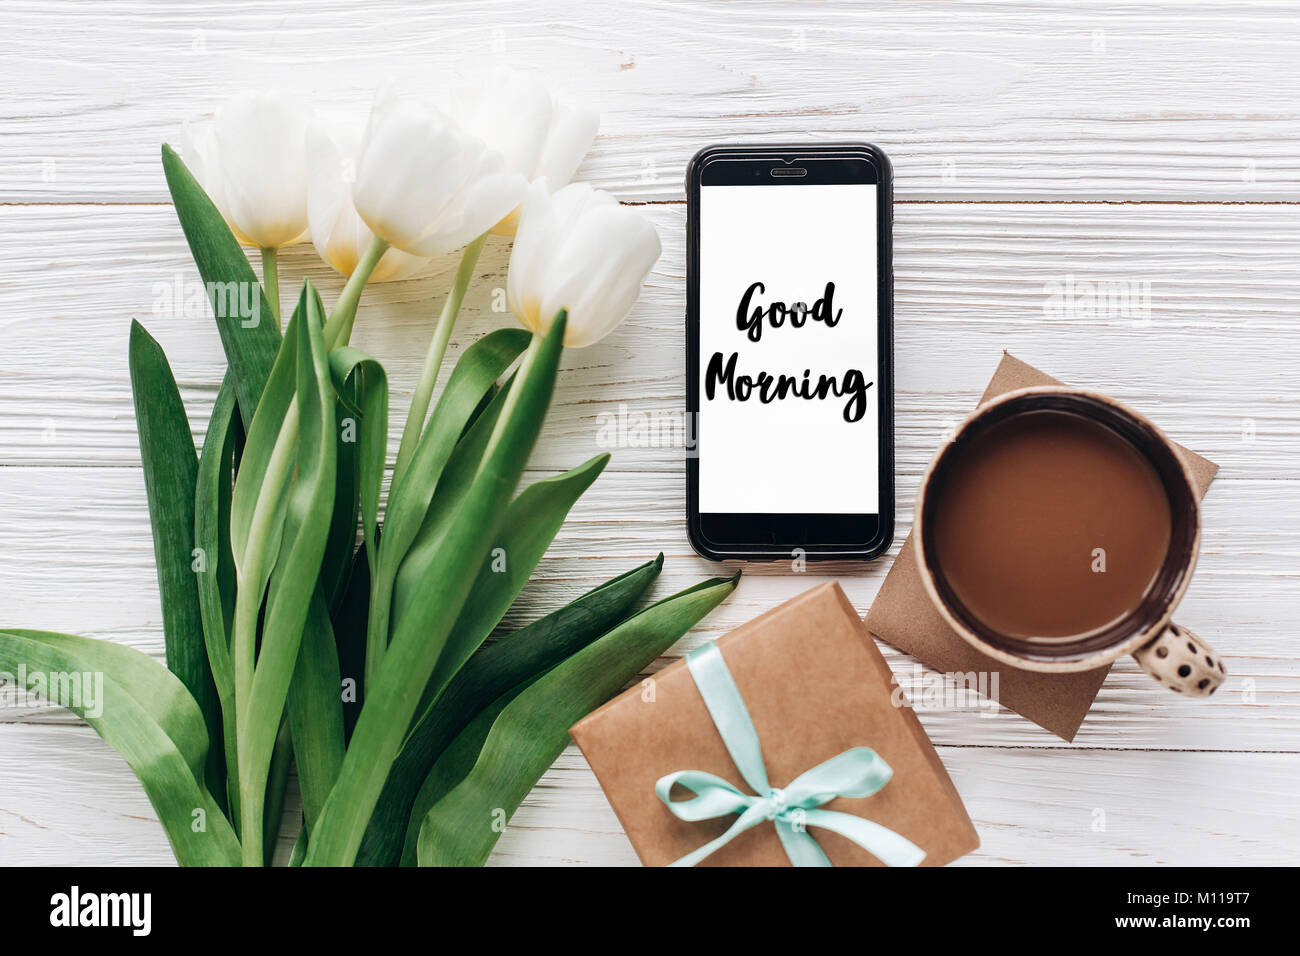 Good morning text sign on phone screen and stylish gift and tulips good morning text sign on phone screen and stylish gift and tulips and coffee on white wooden rustic background flat lay with flowers and gadget spa negle Choice Image